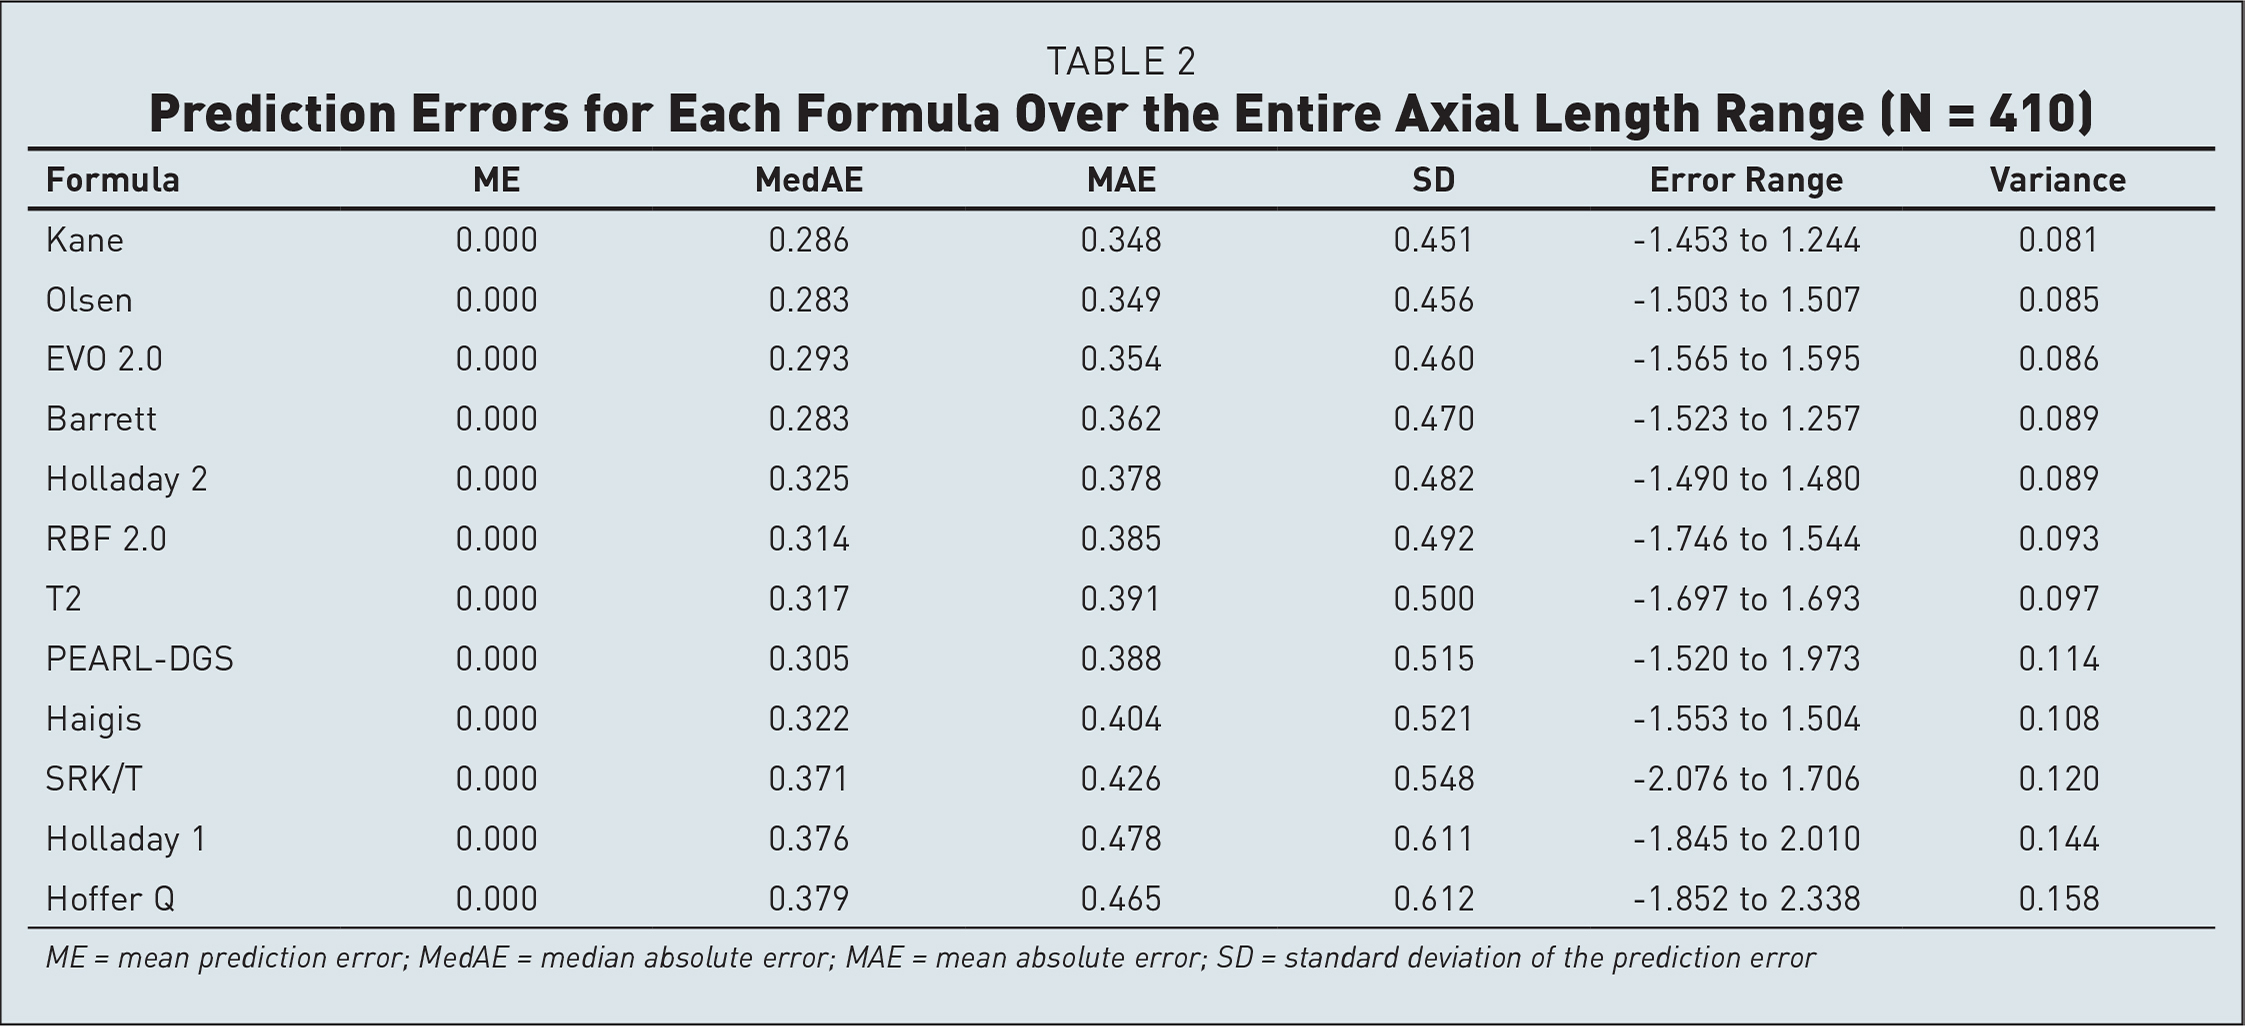 Prediction Errors for Each Formula Over the Entire Axial Length Range (N = 410)